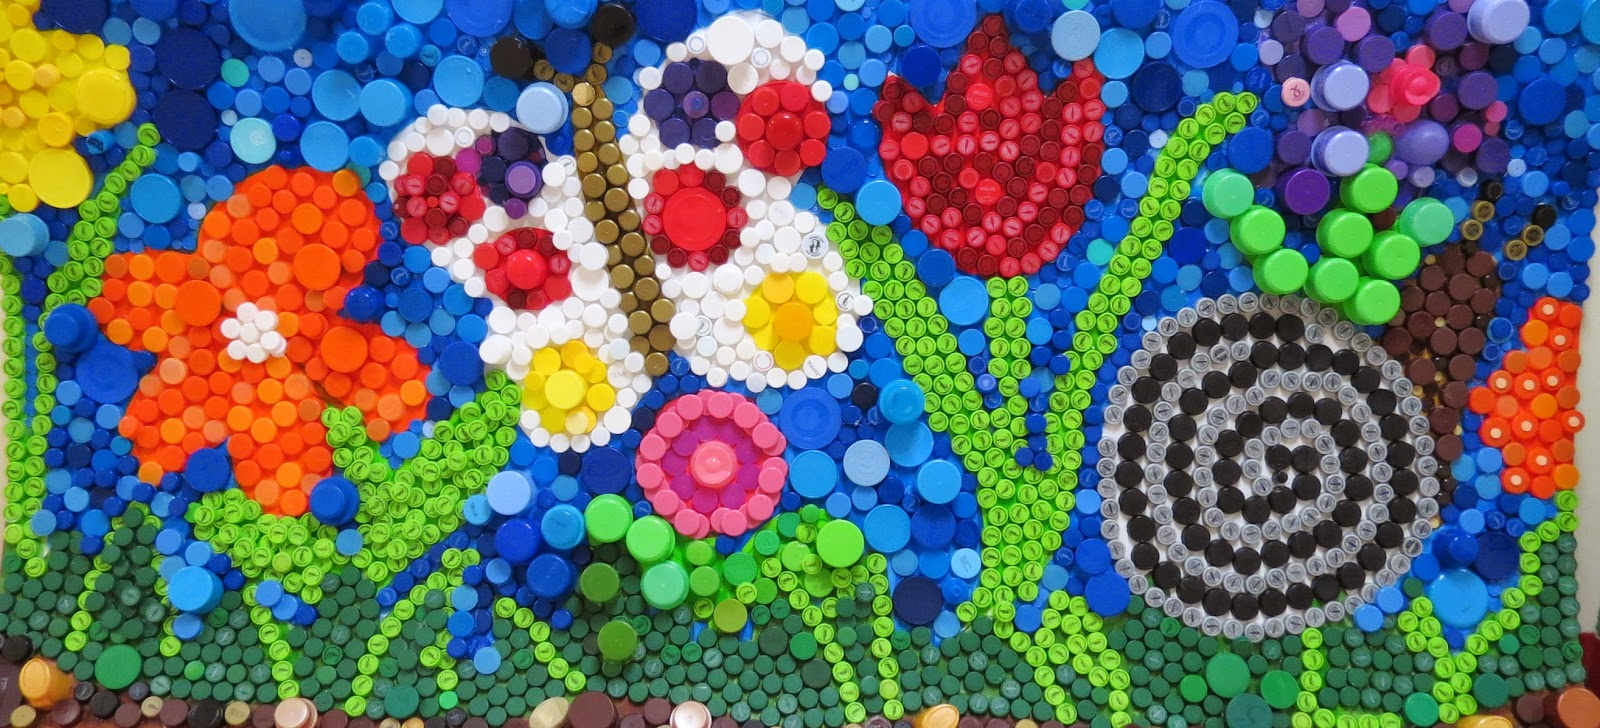 Aesgate recycled bottle cap art for Bottle top art projects